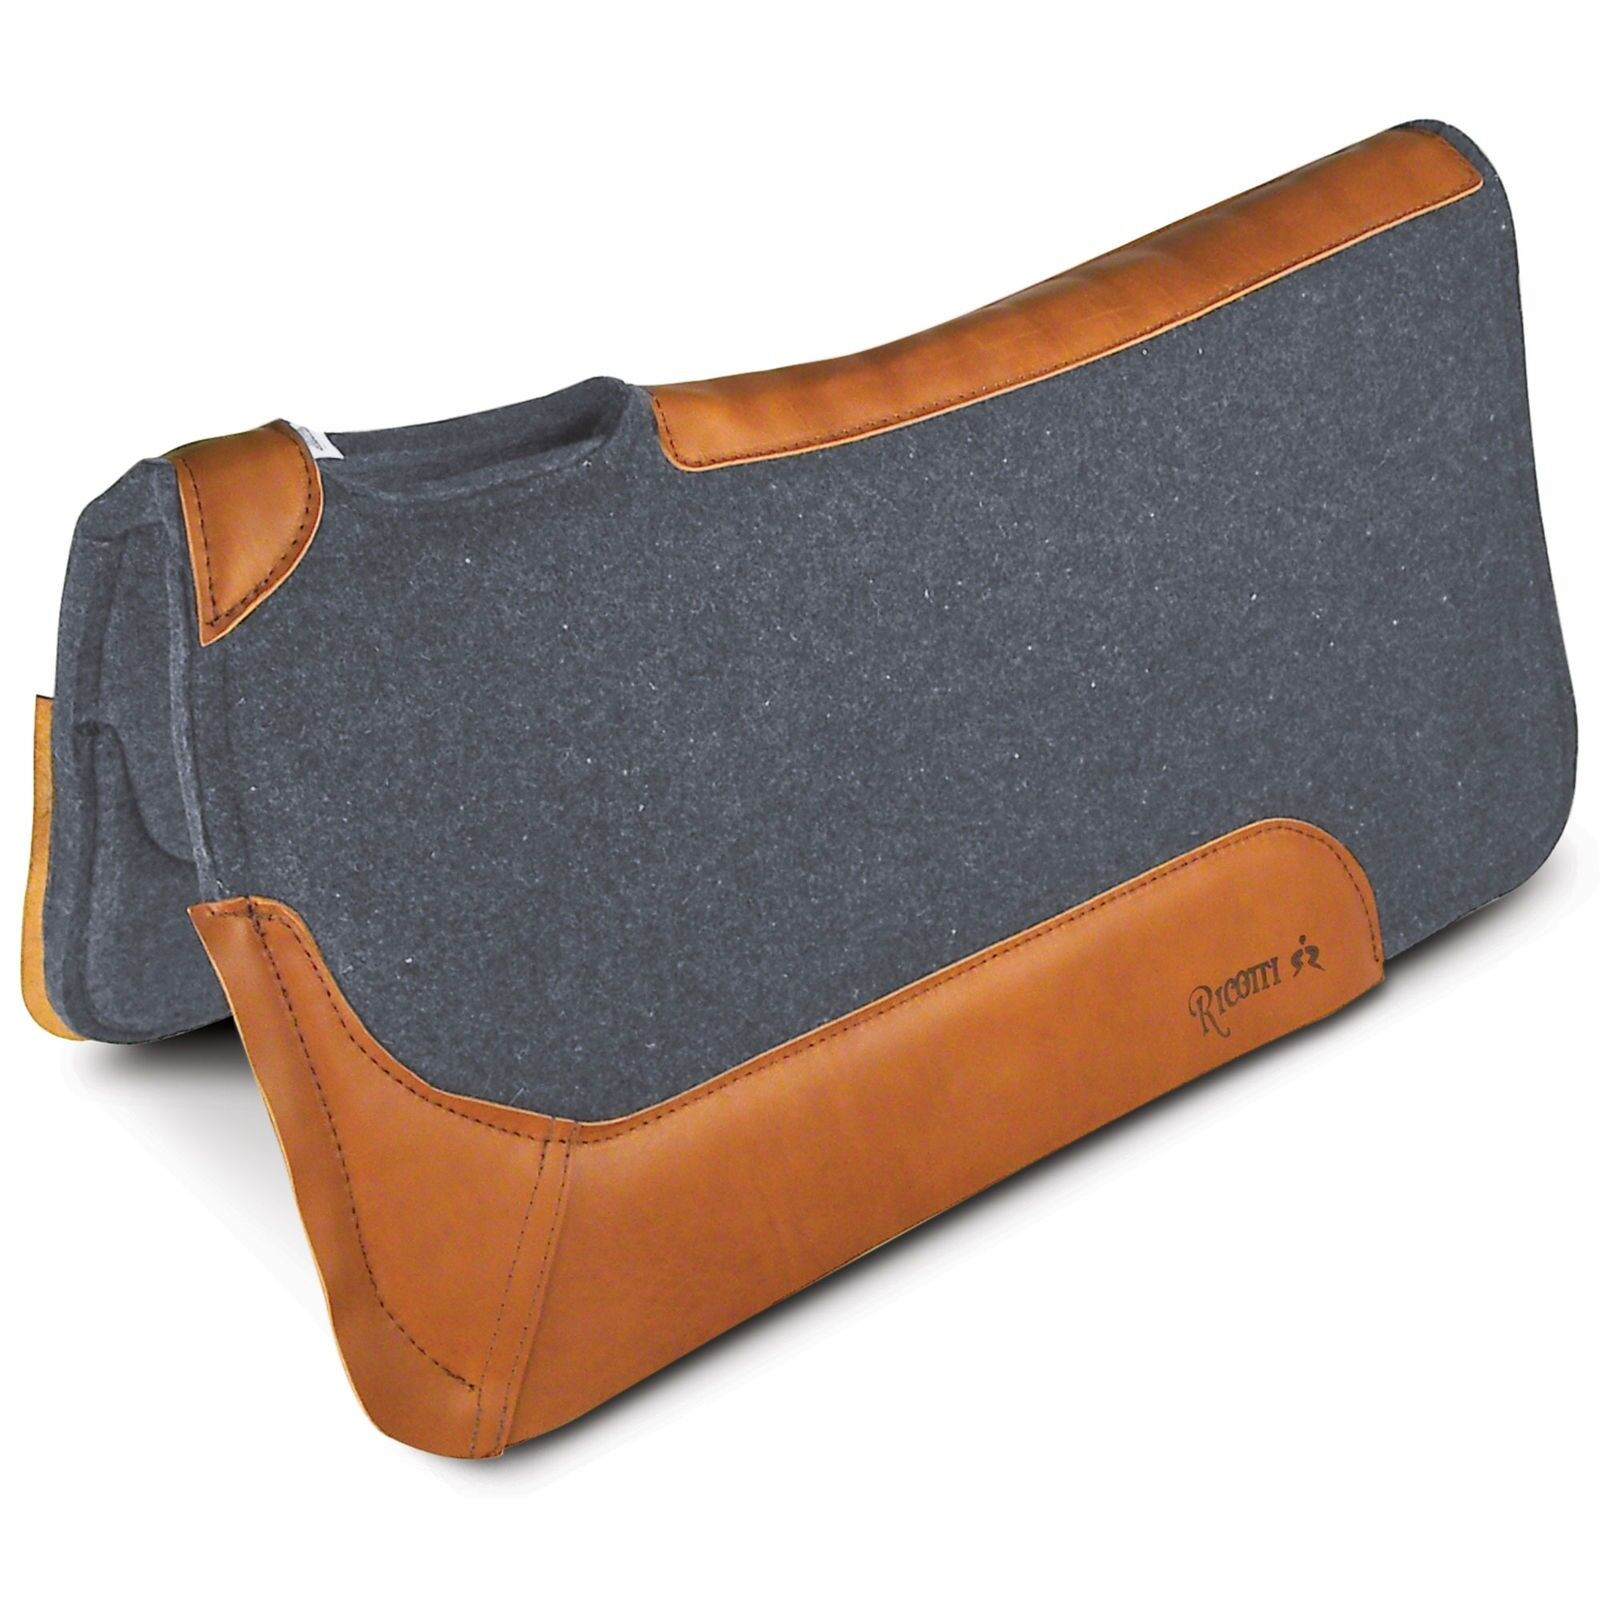 Ricotti Square Wool Blend Western Saddle Pad with Ultracell Foam Insert